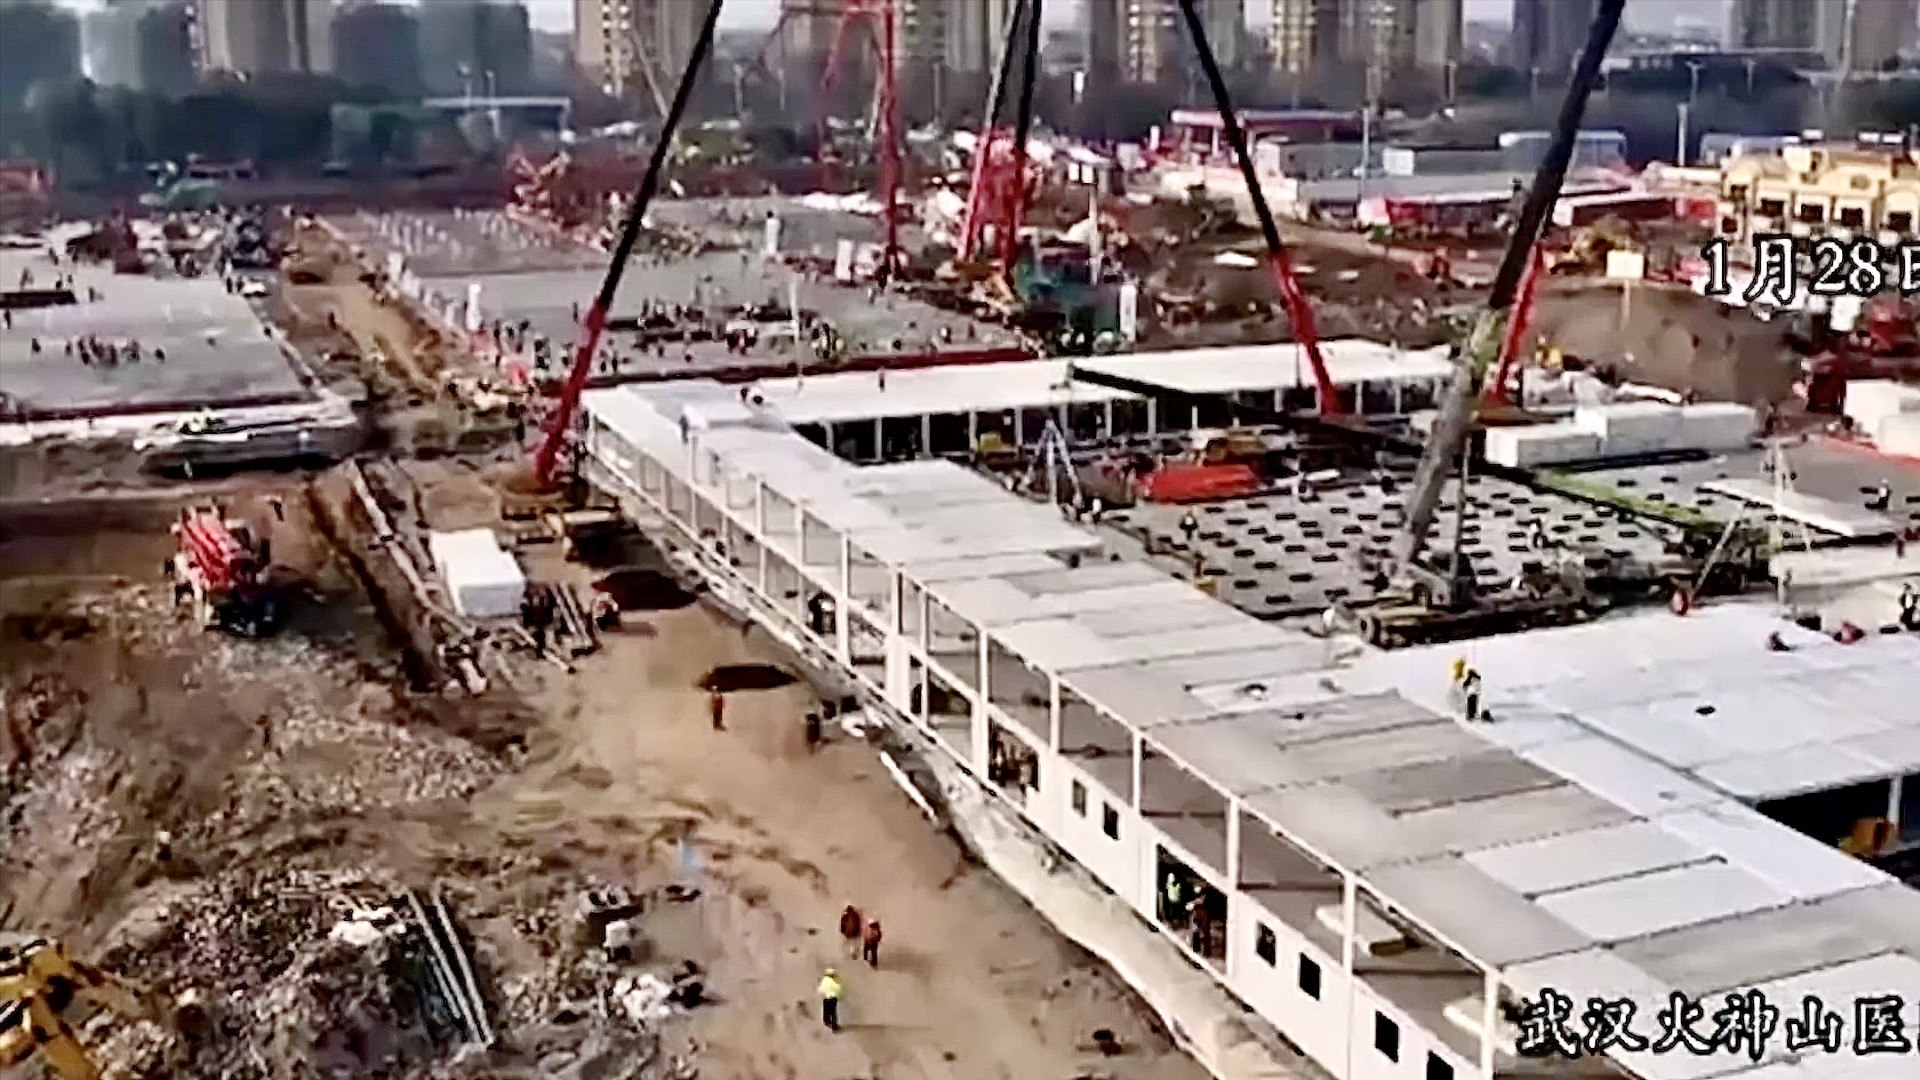 Incredible Timelapse - China Builds Corona Virus Hospital in 10 Days